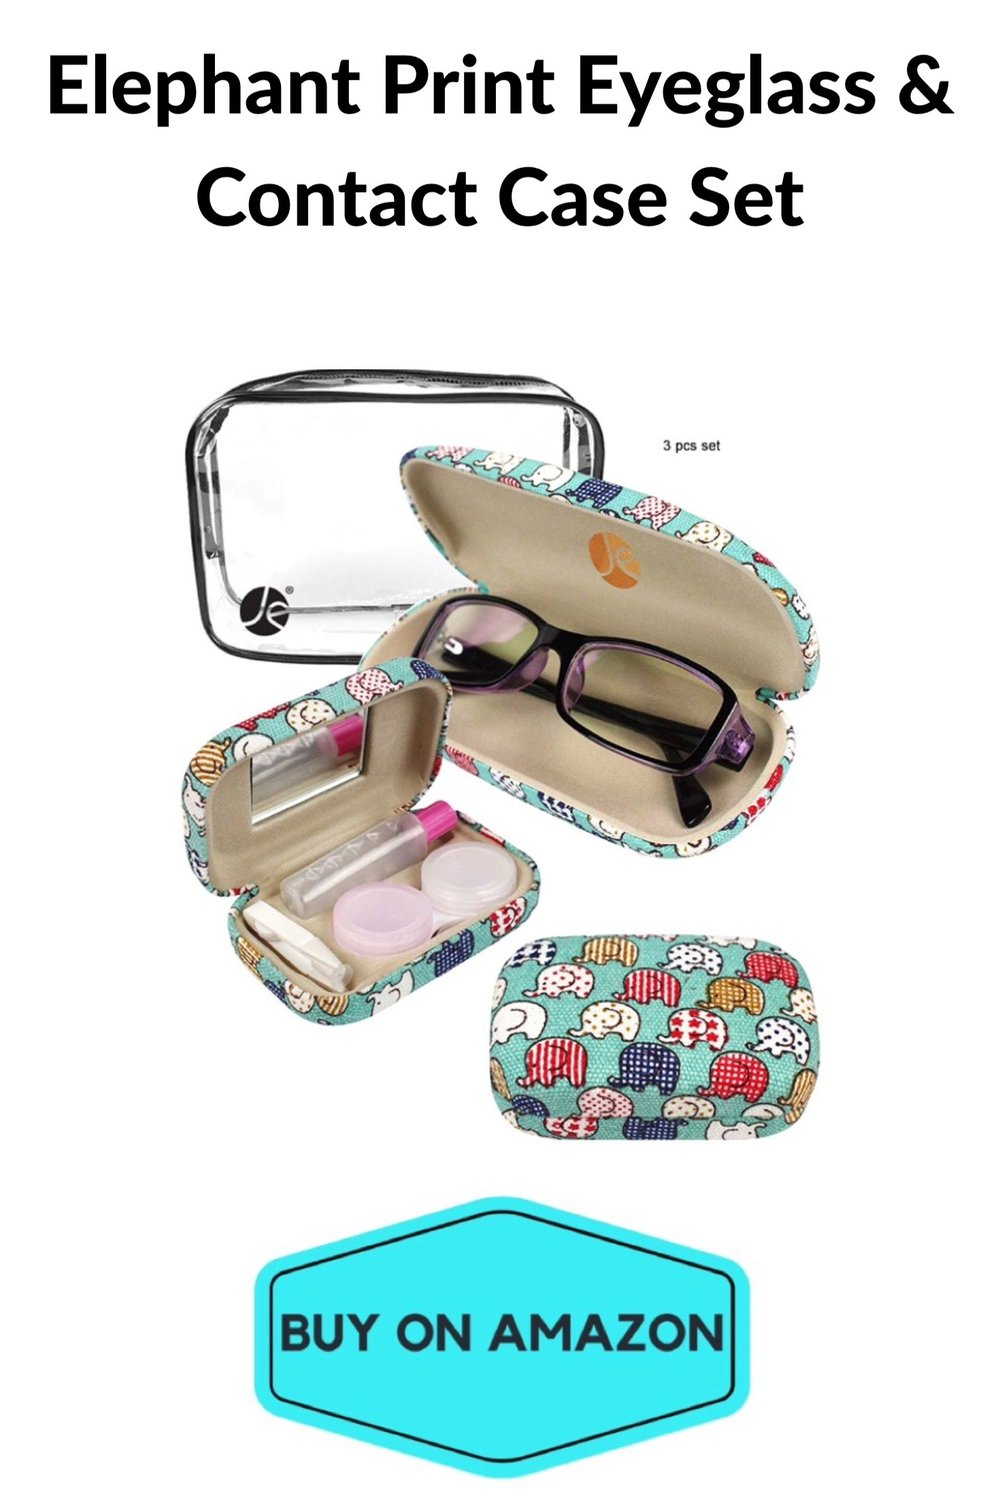 Elephant Print Eyeglass & Contact Case Set